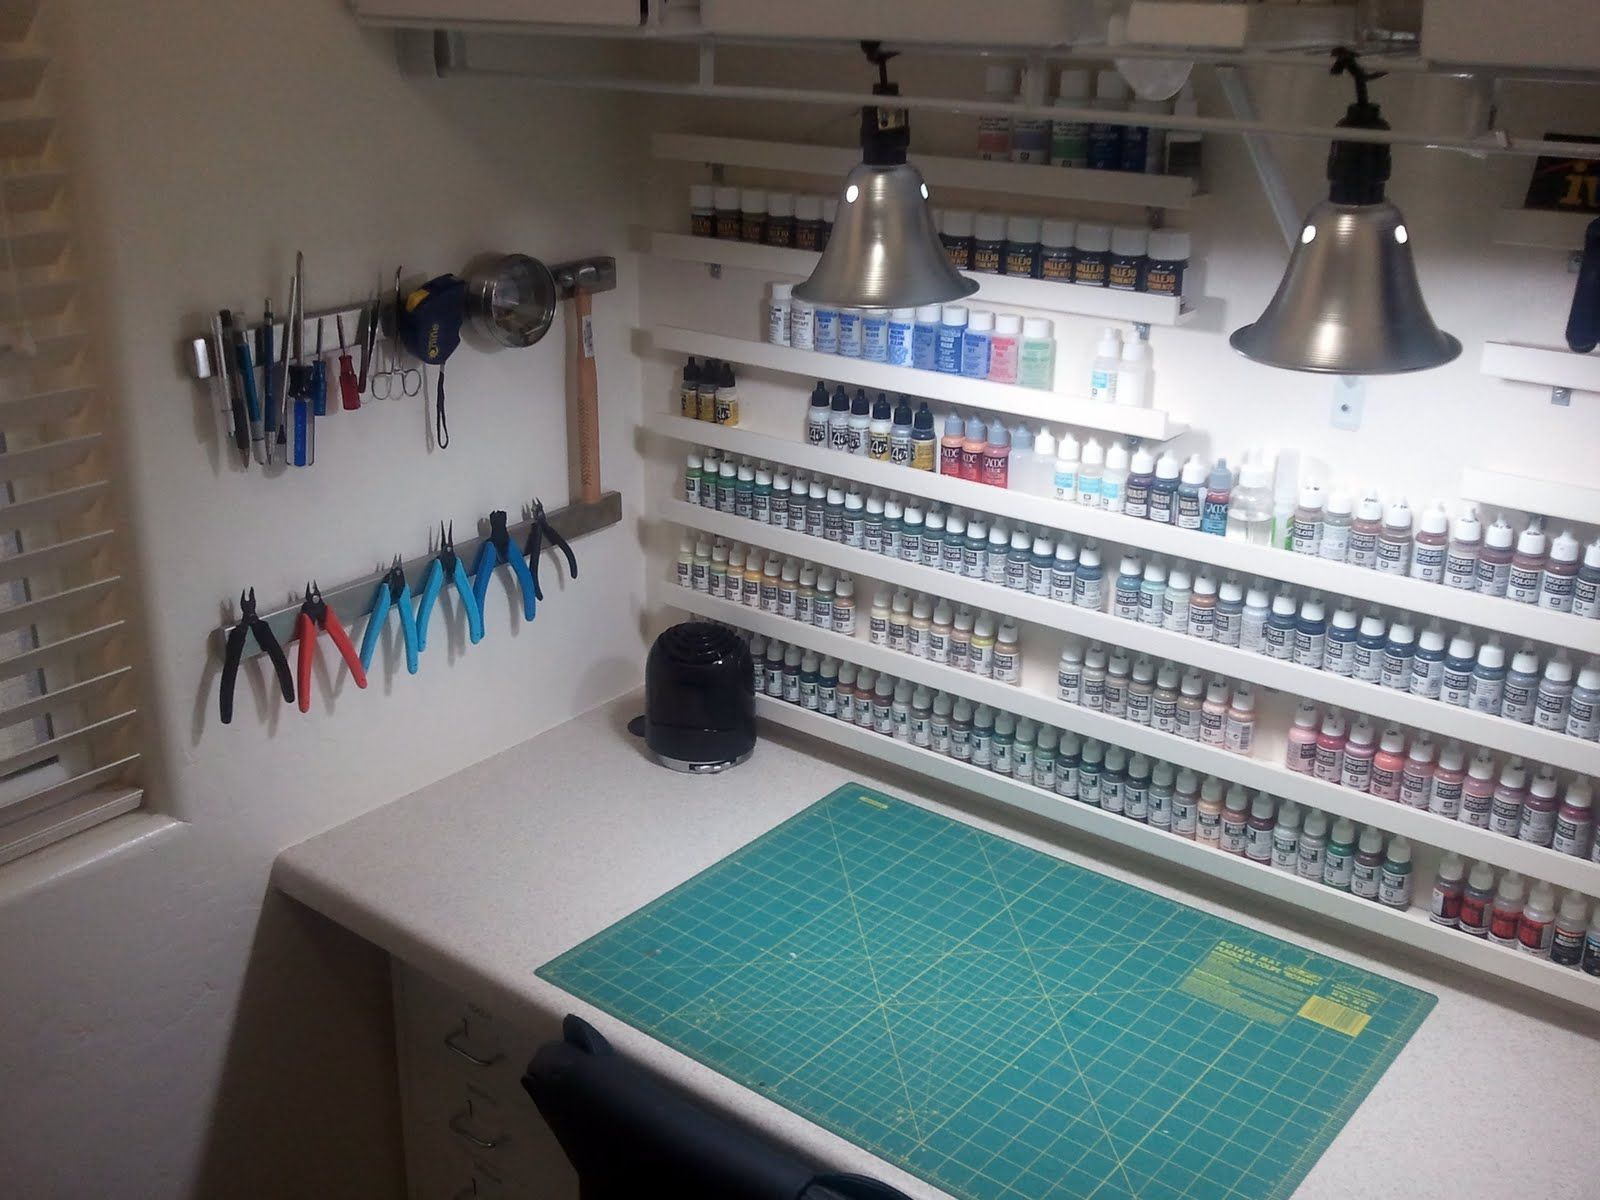 workbench lighting ideas. Craft Room: Small Shelves On Wall, Magnetic Tool Storage, Big Cutting Mat, Good Lighting. Workbench Lighting Ideas S